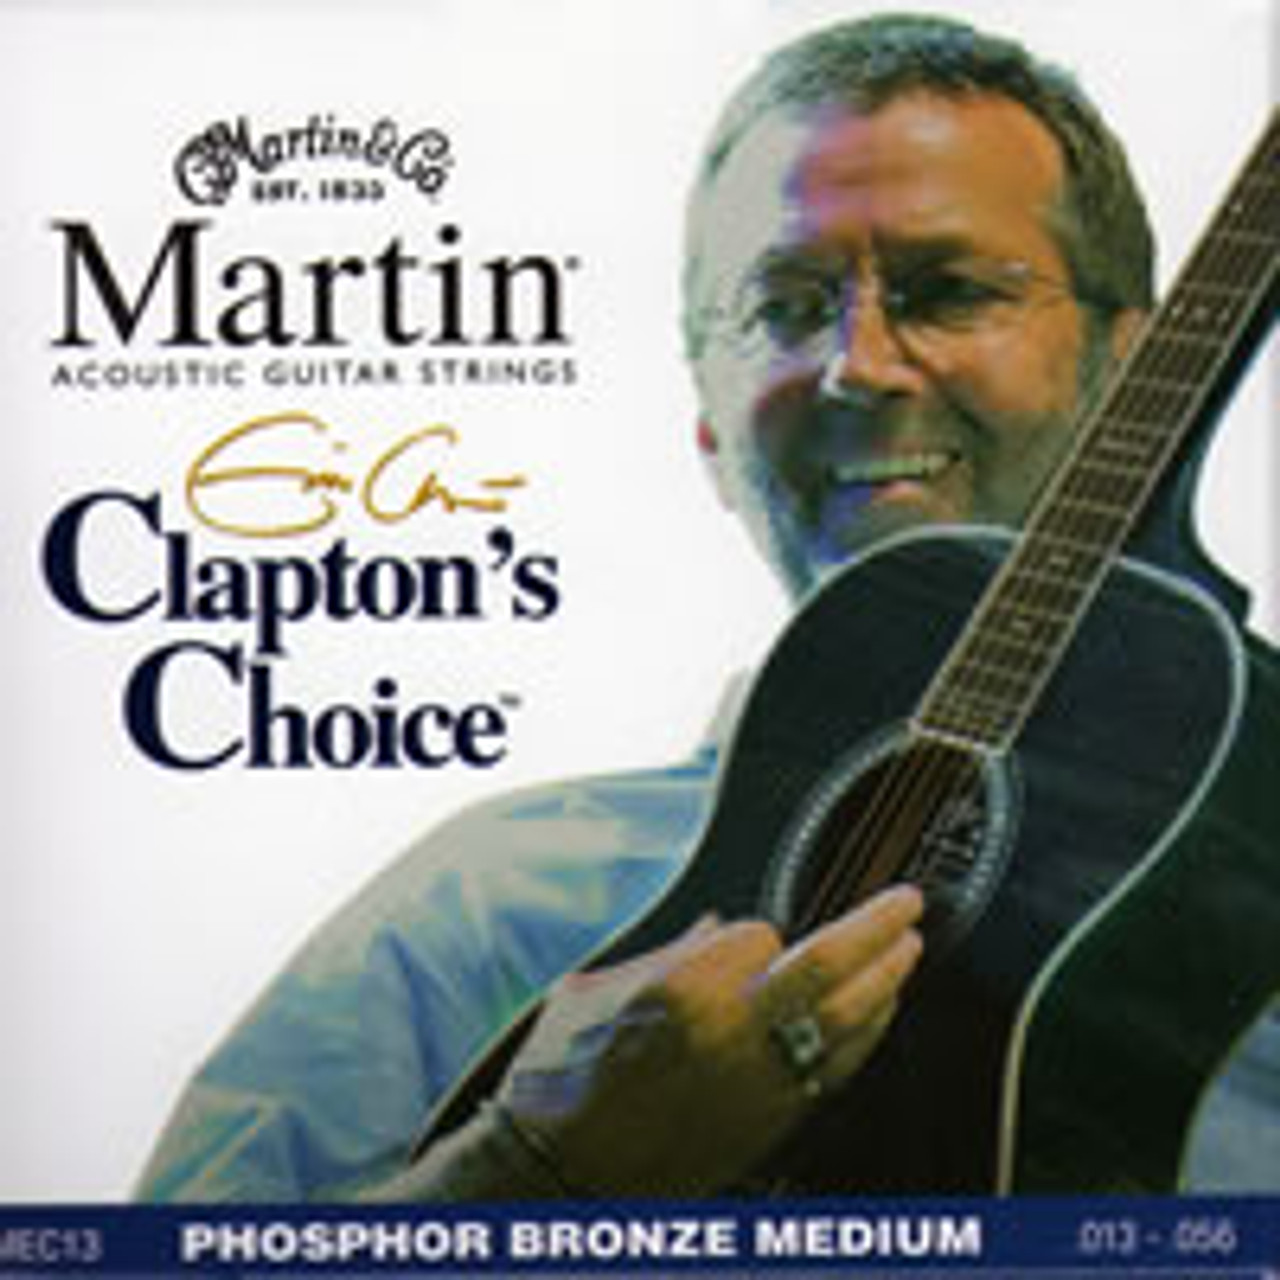 Martin Eric Clapton's Choice Strings Acoustic Guitar